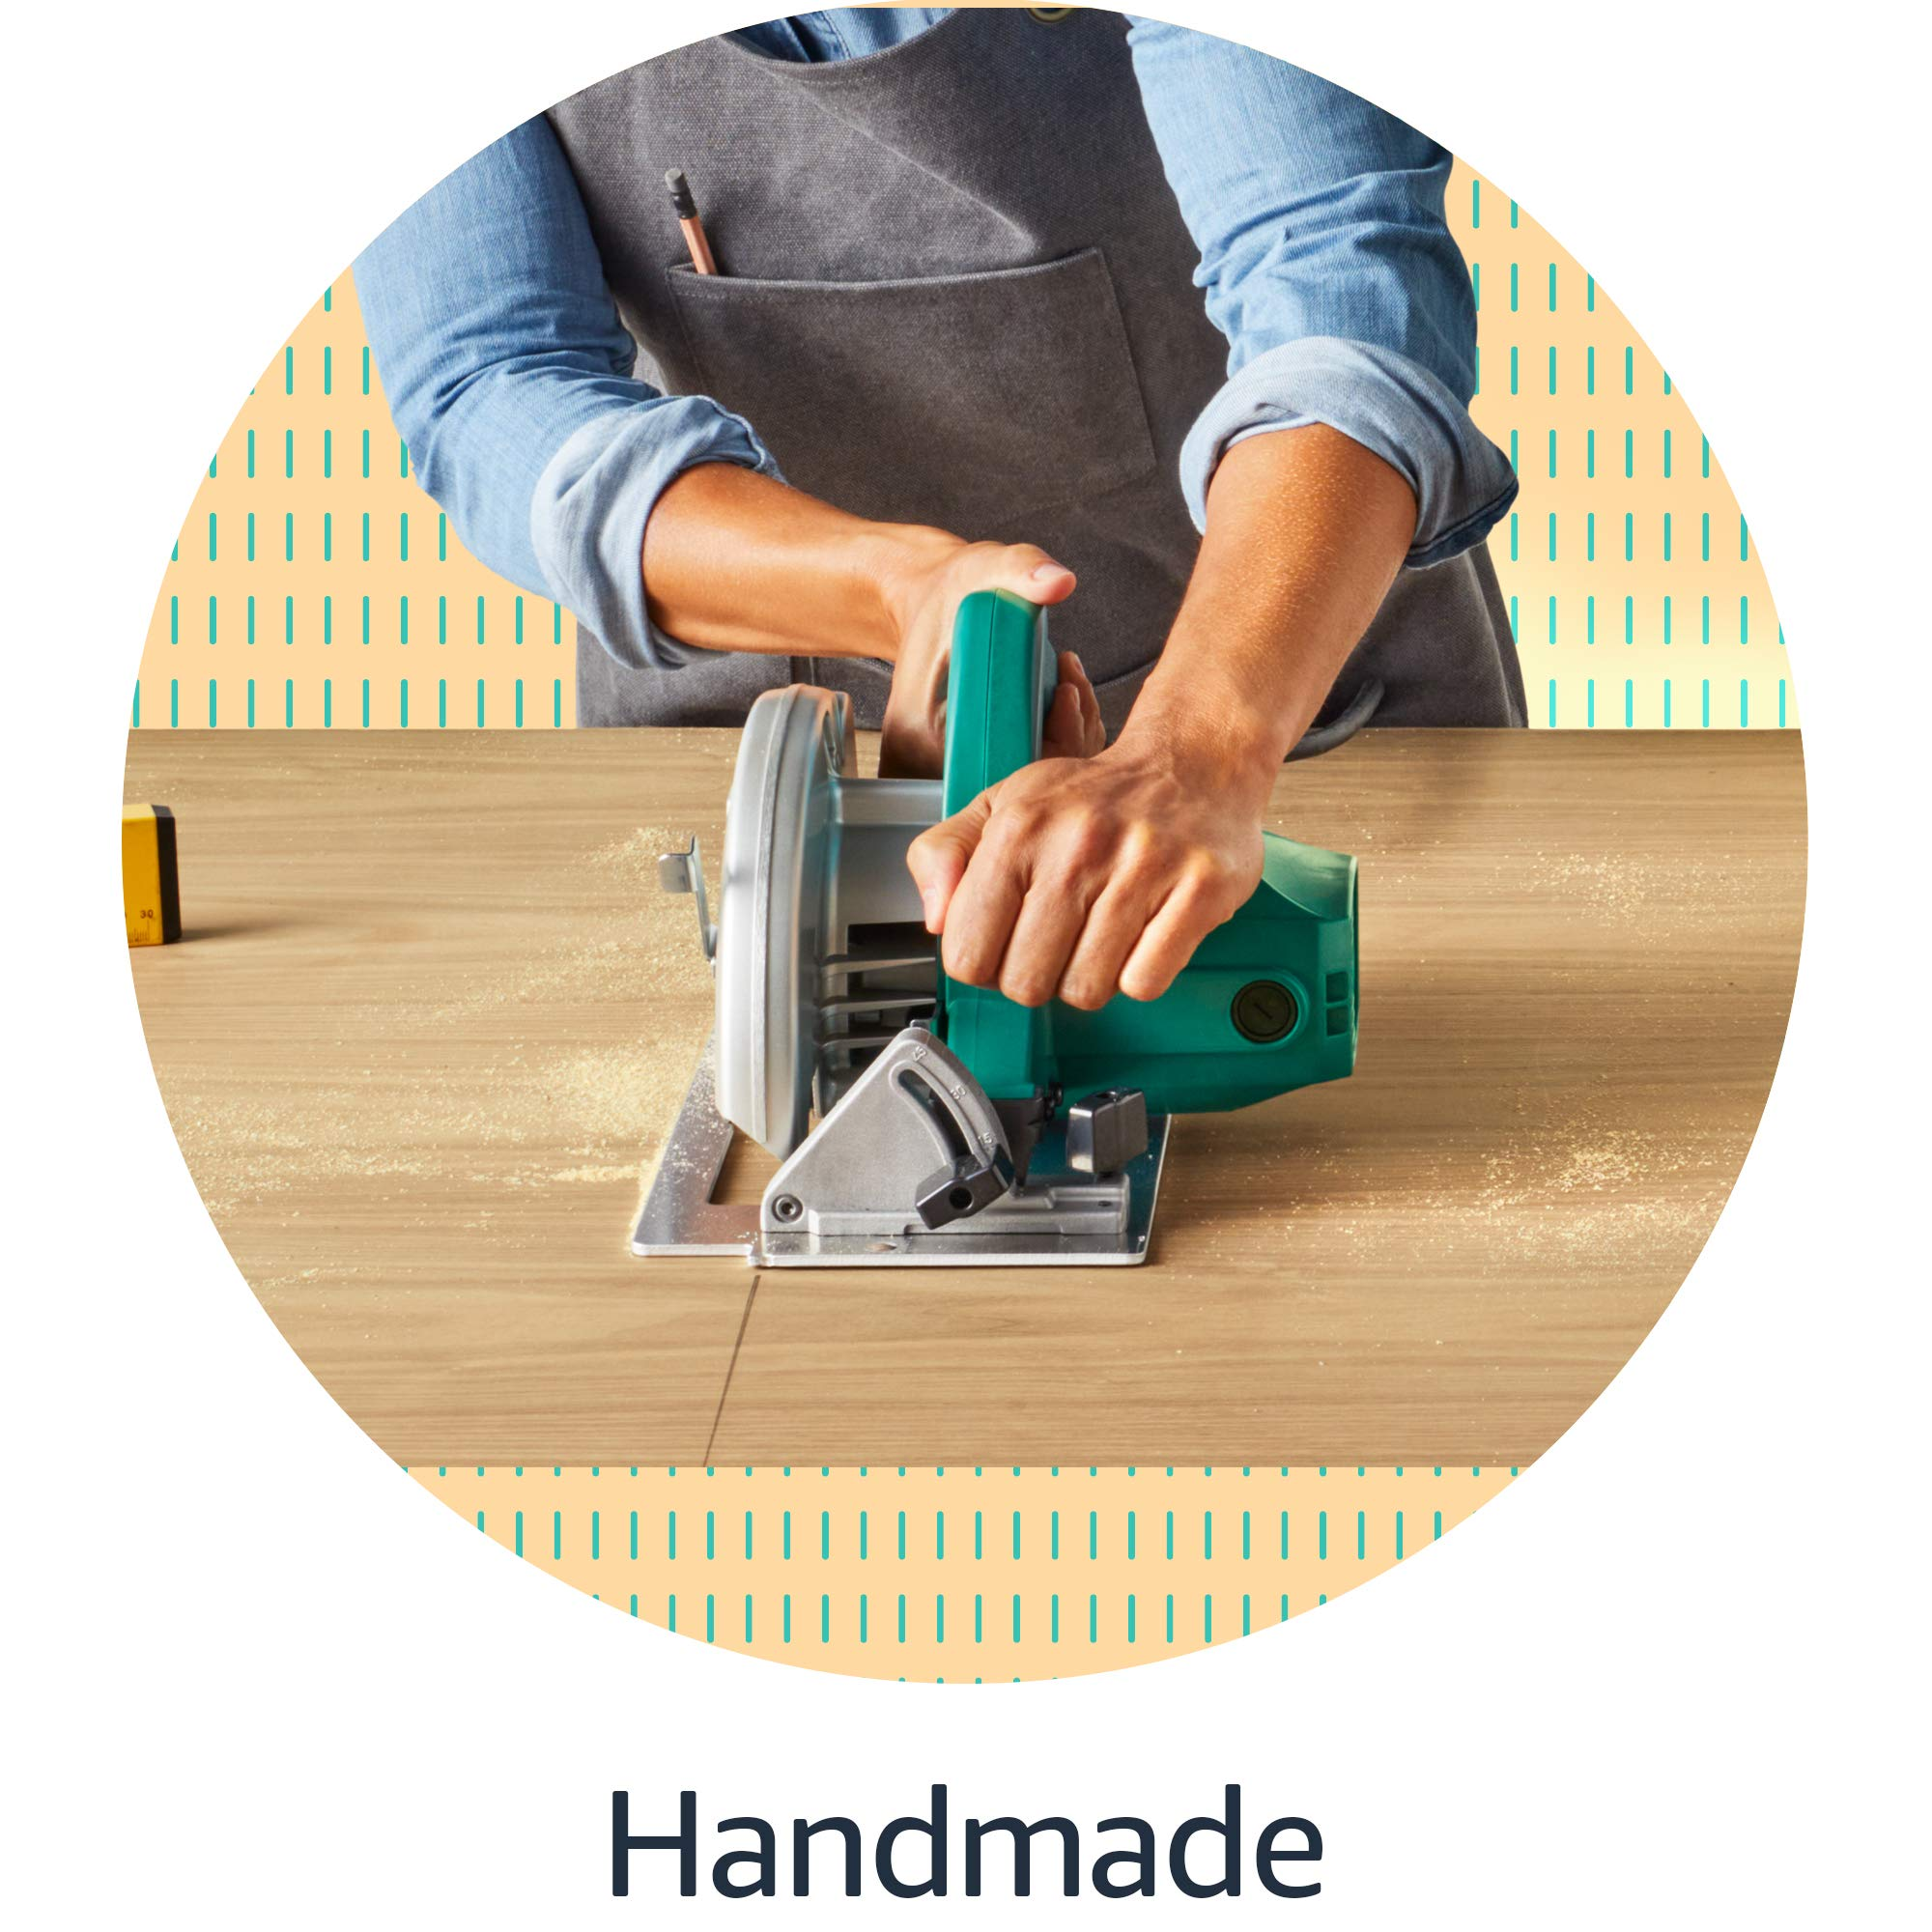 Shop Handmade products